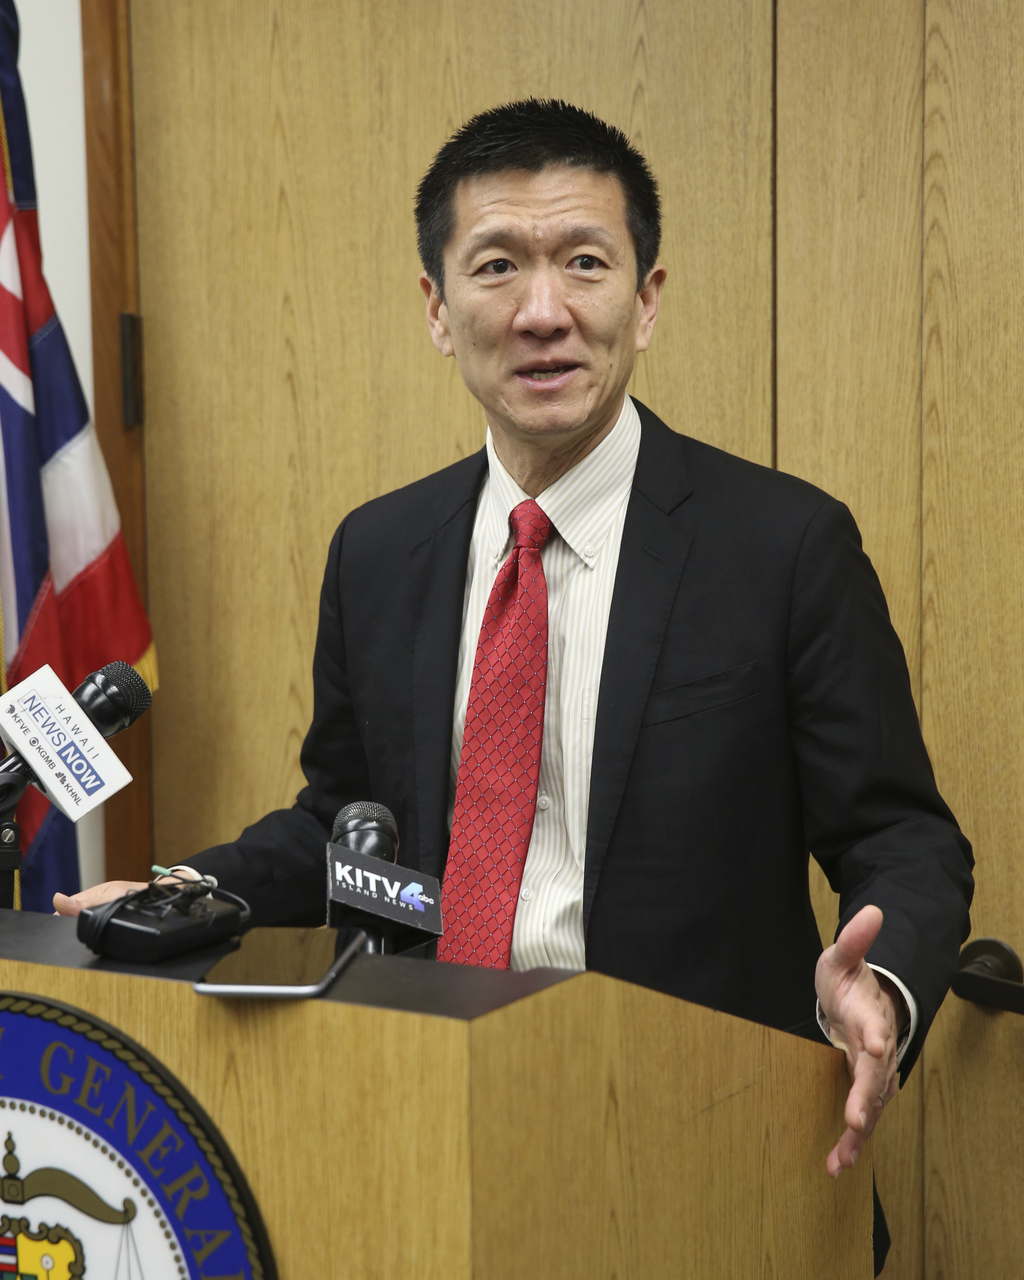 Hawaii Attorney General Douglas Chin speaks at a news conference Thursday, March 9, 2107, in Honolulu. Chin's office filed an amended l...